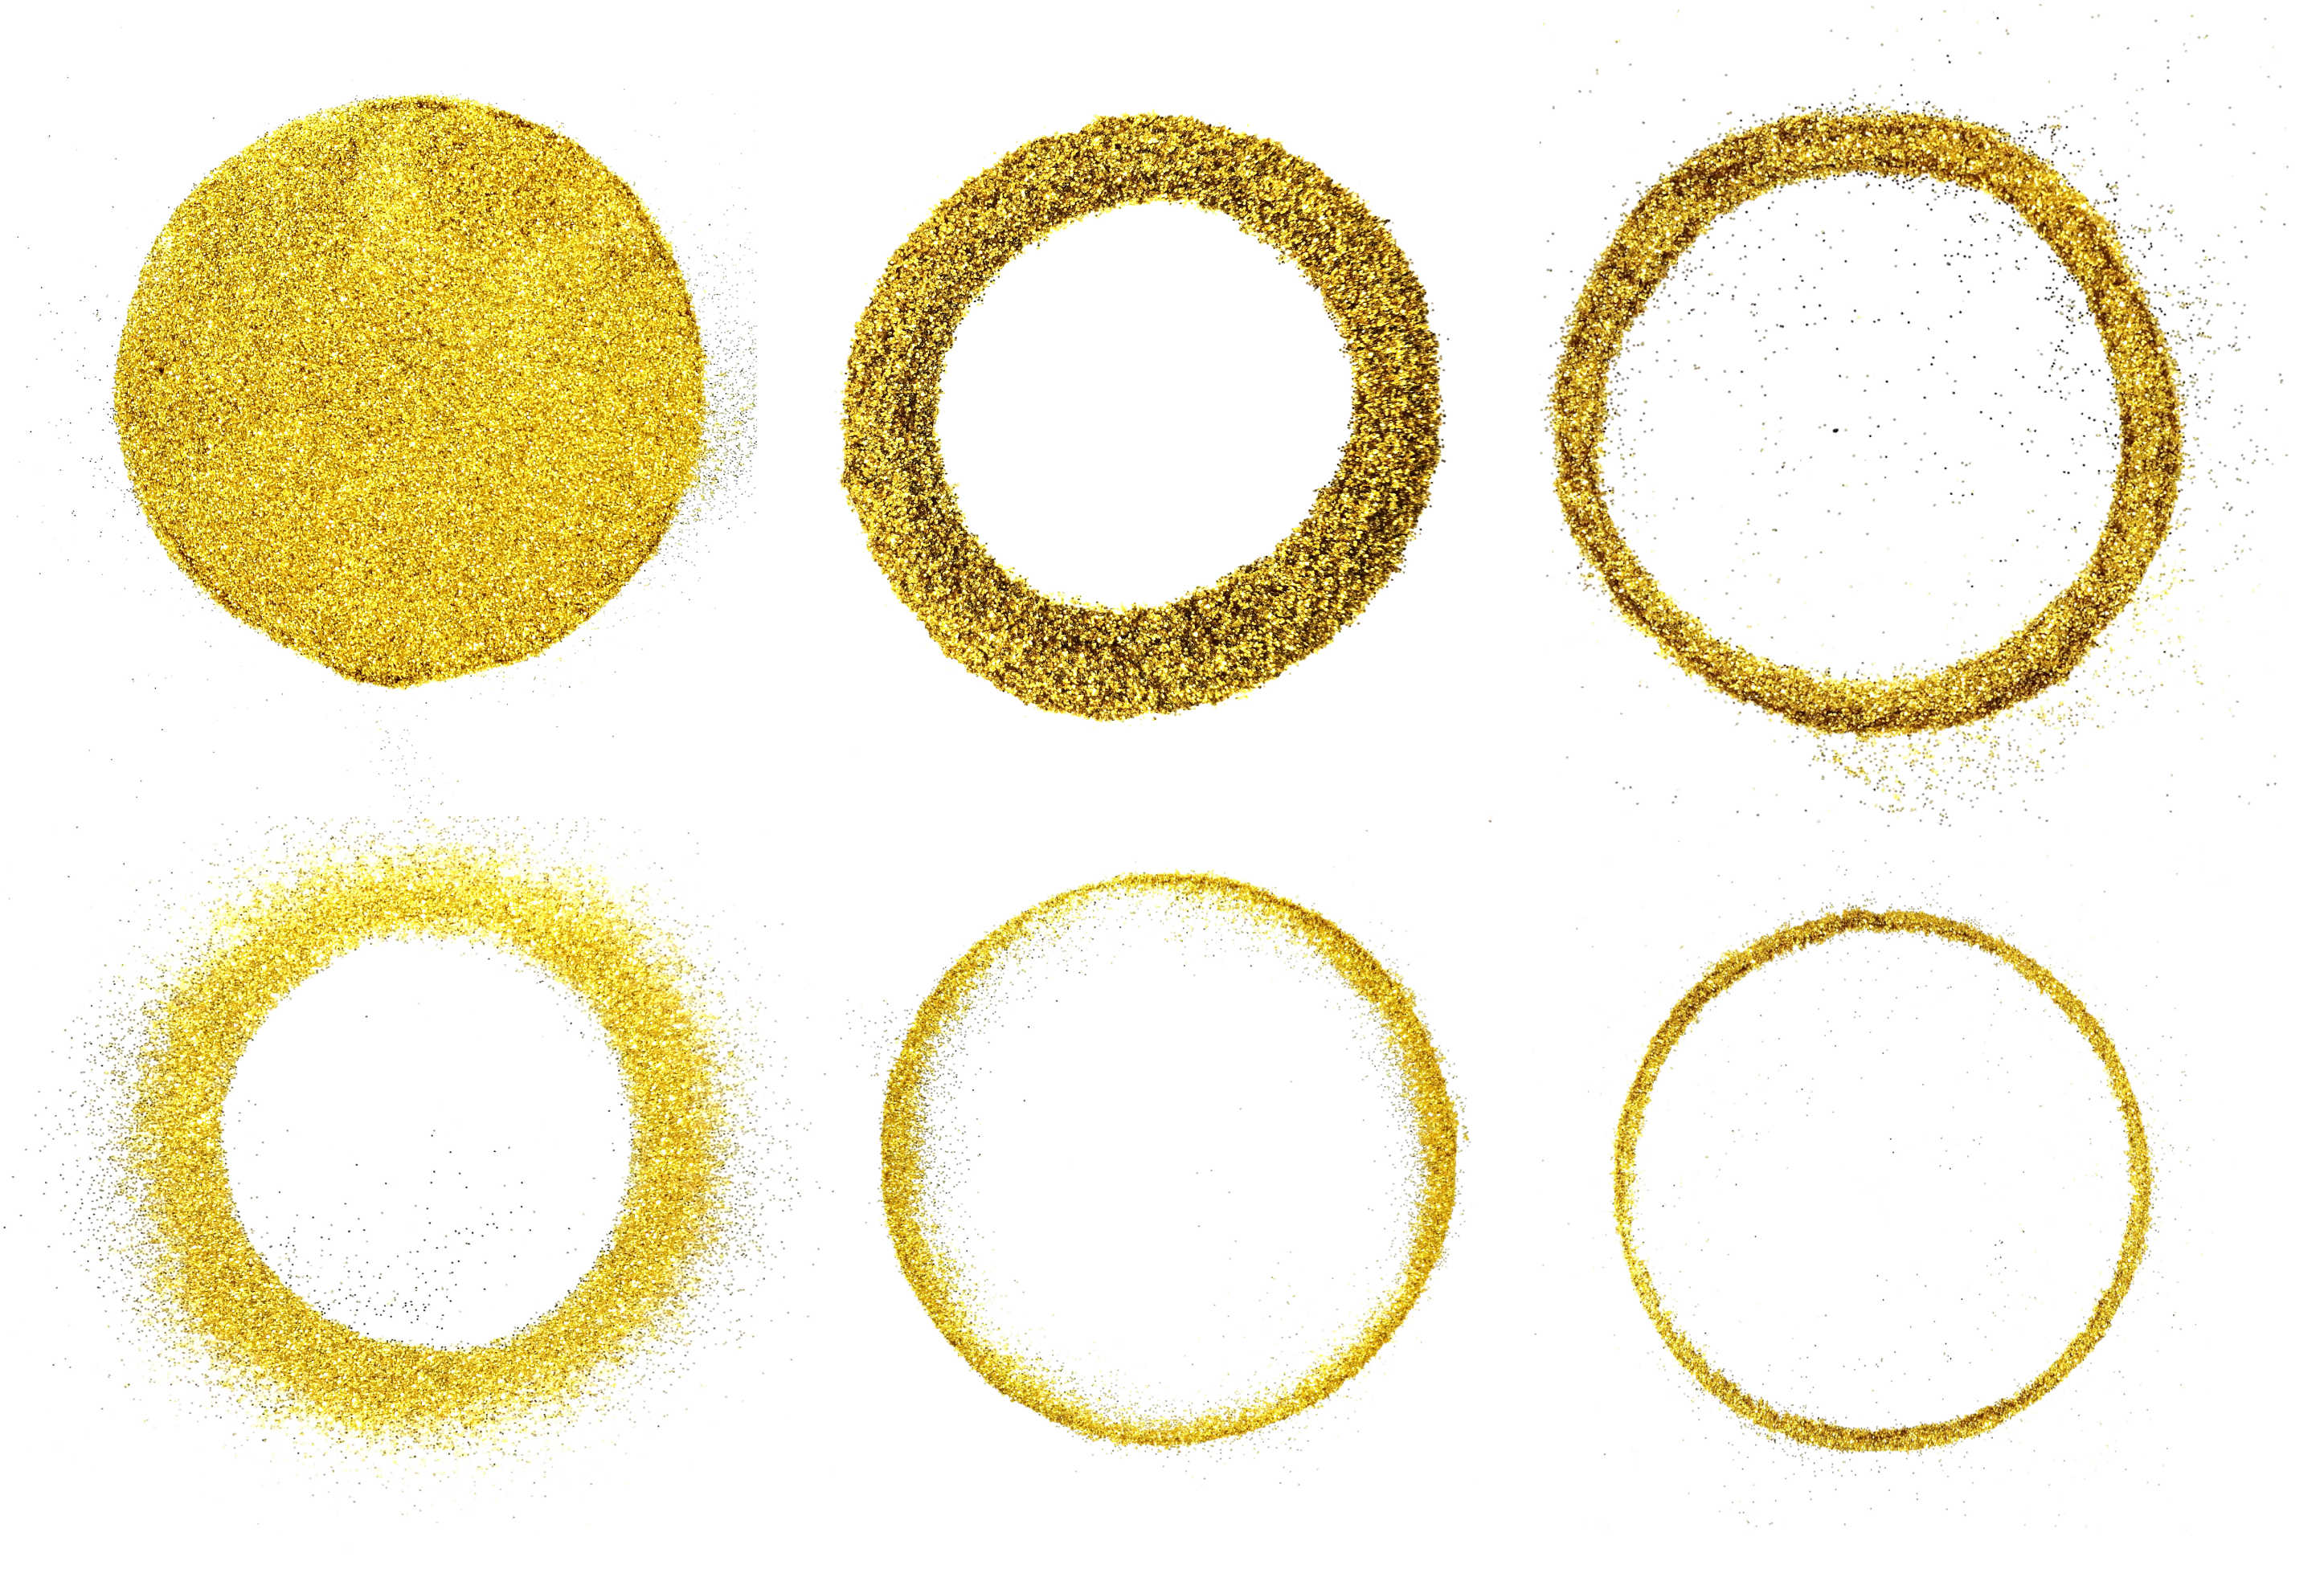 gold-glitter-circle-round-background-cover.jpg